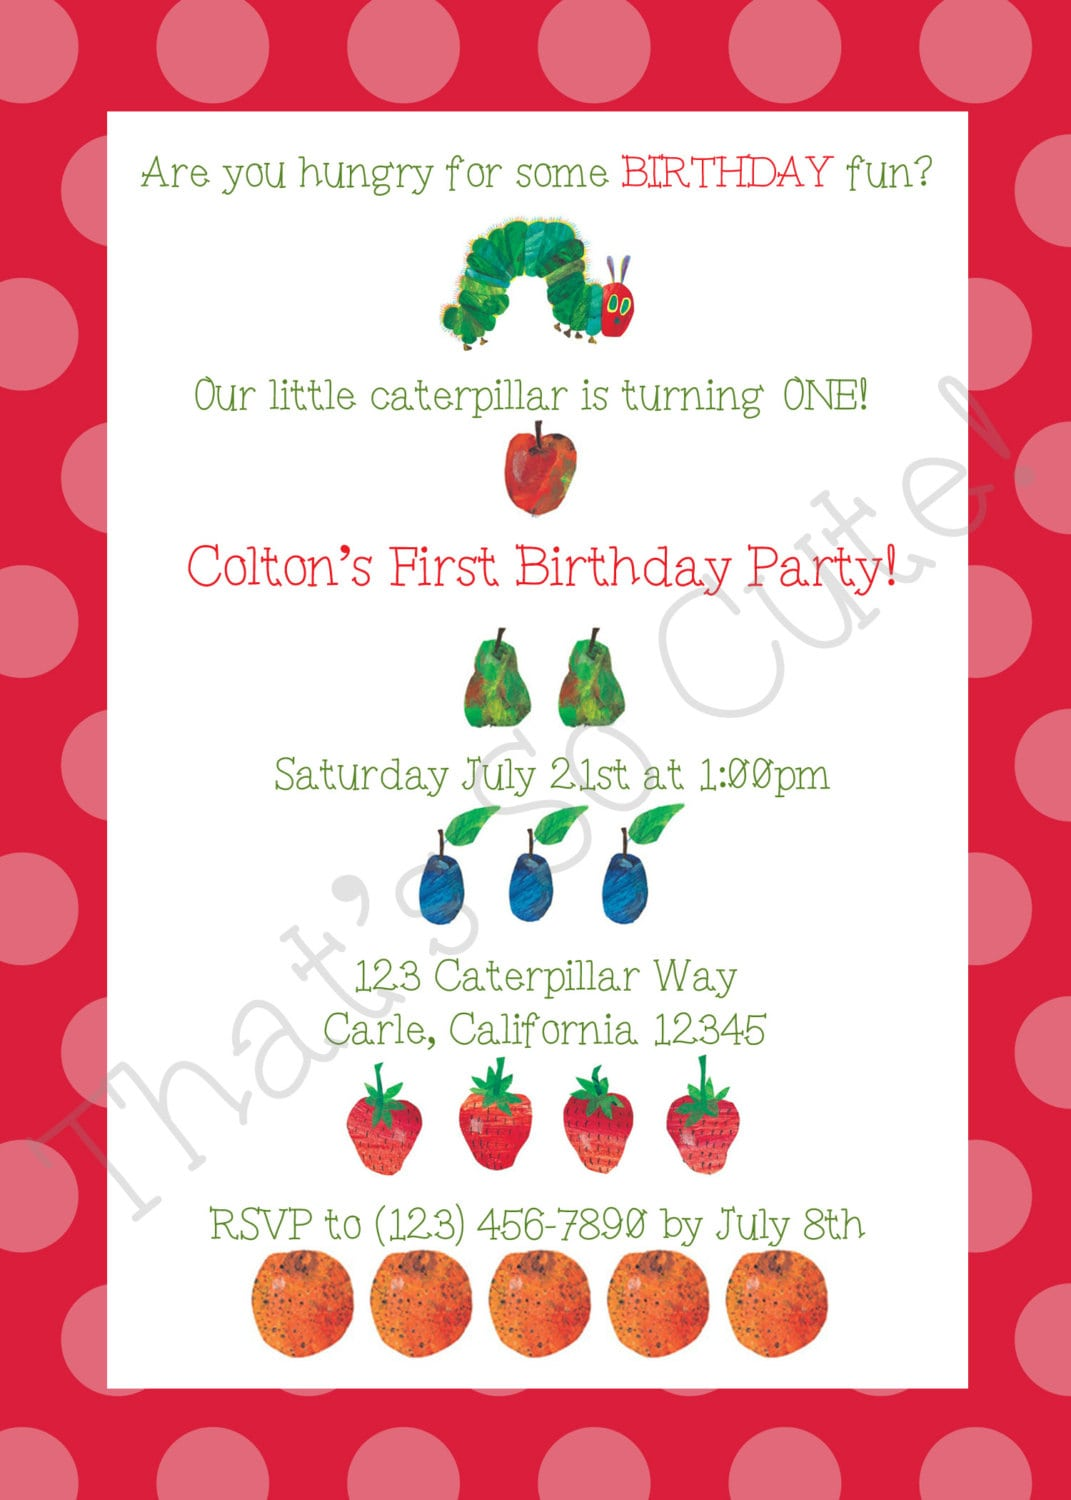 Hungry Caterpillar Party Invitations